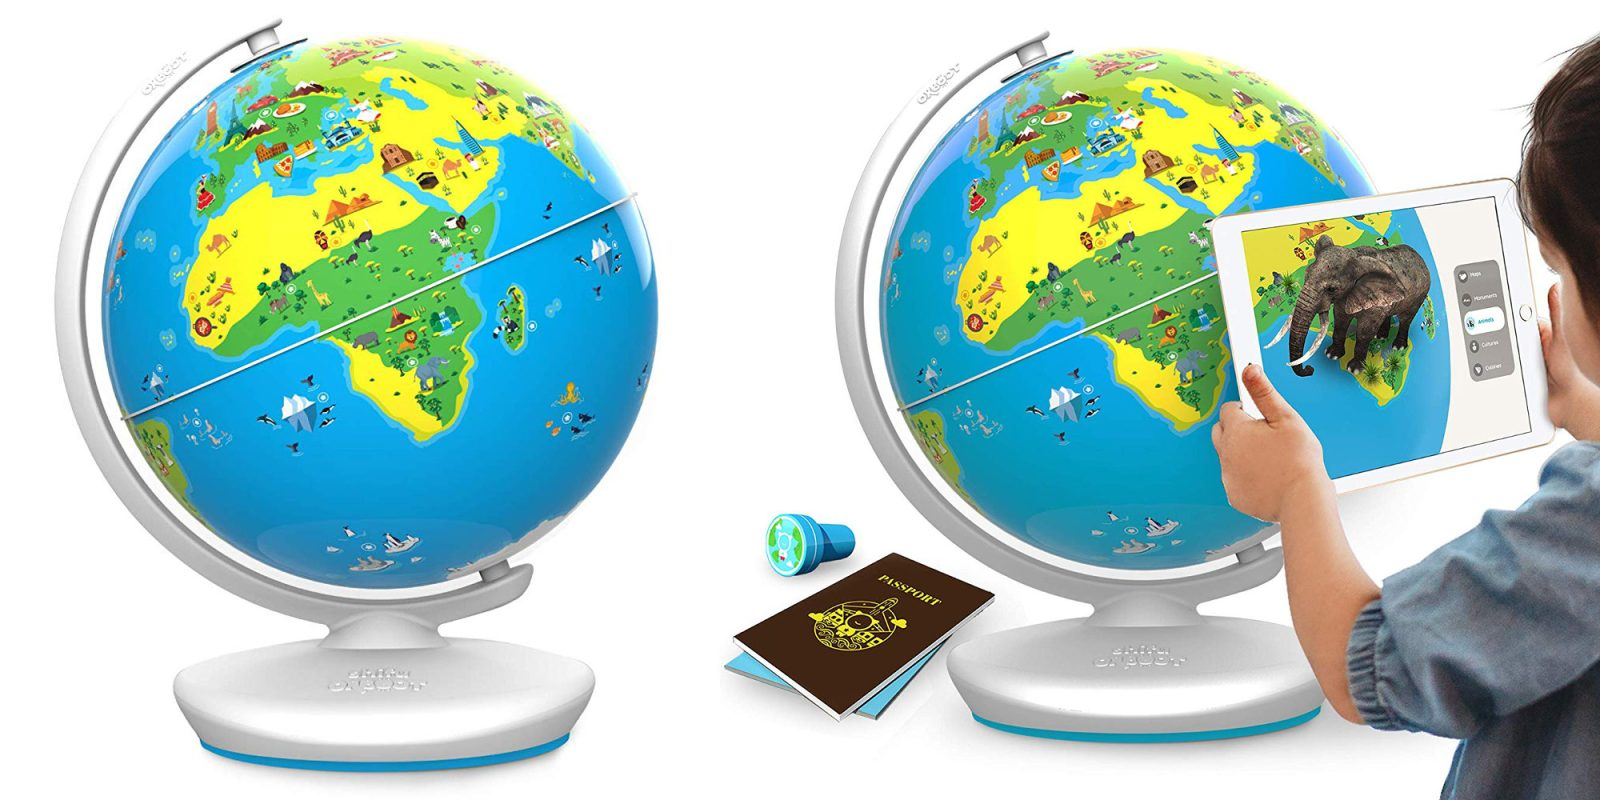 Orboot iOS/Android AR Interactive Globe STEM Kit now $35 (Reg. $50) + more